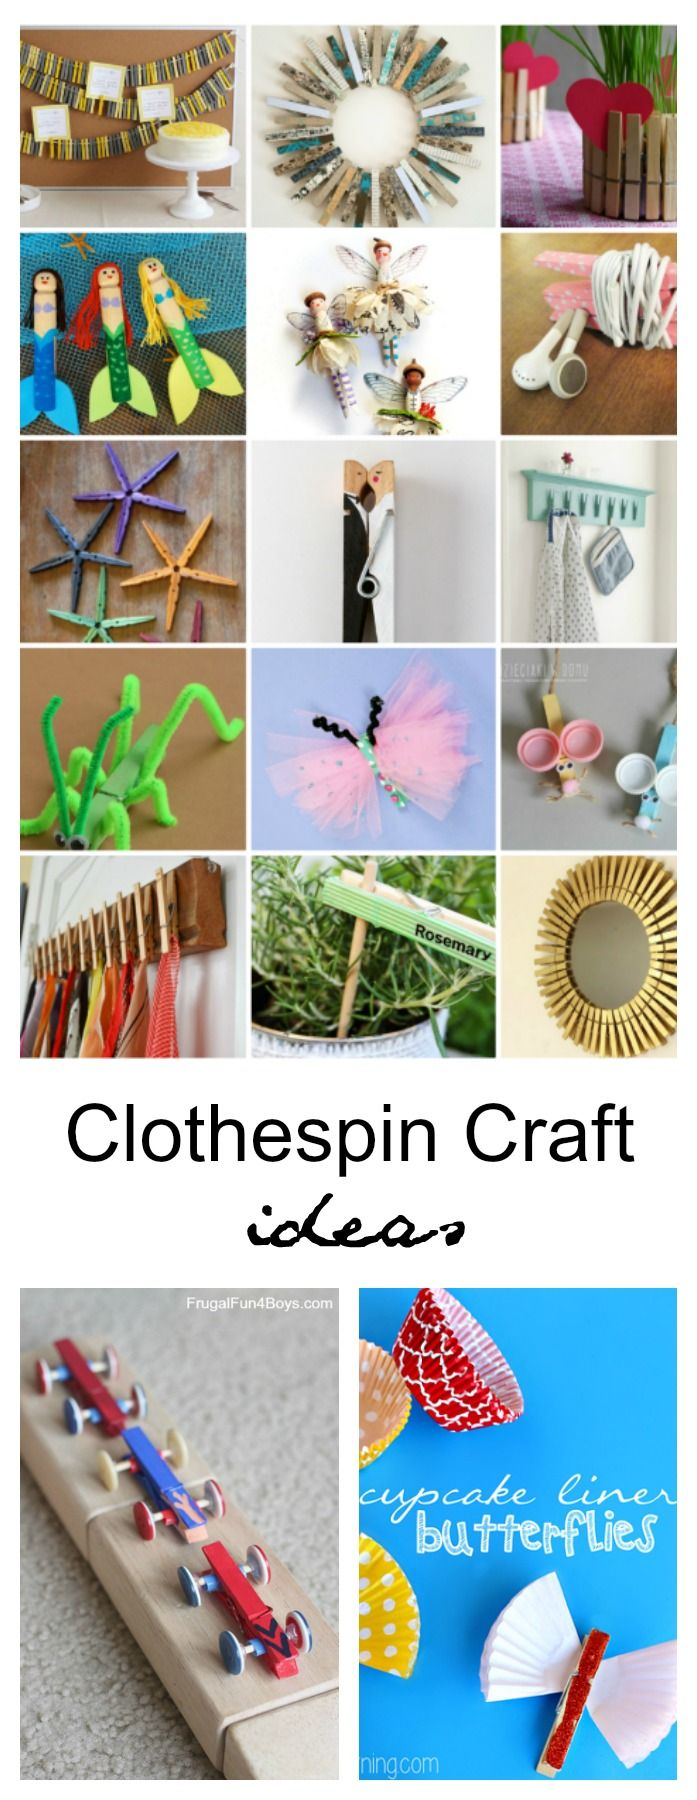 16 best images about clothes pin art on pinterest for Clothespin crafts for adults